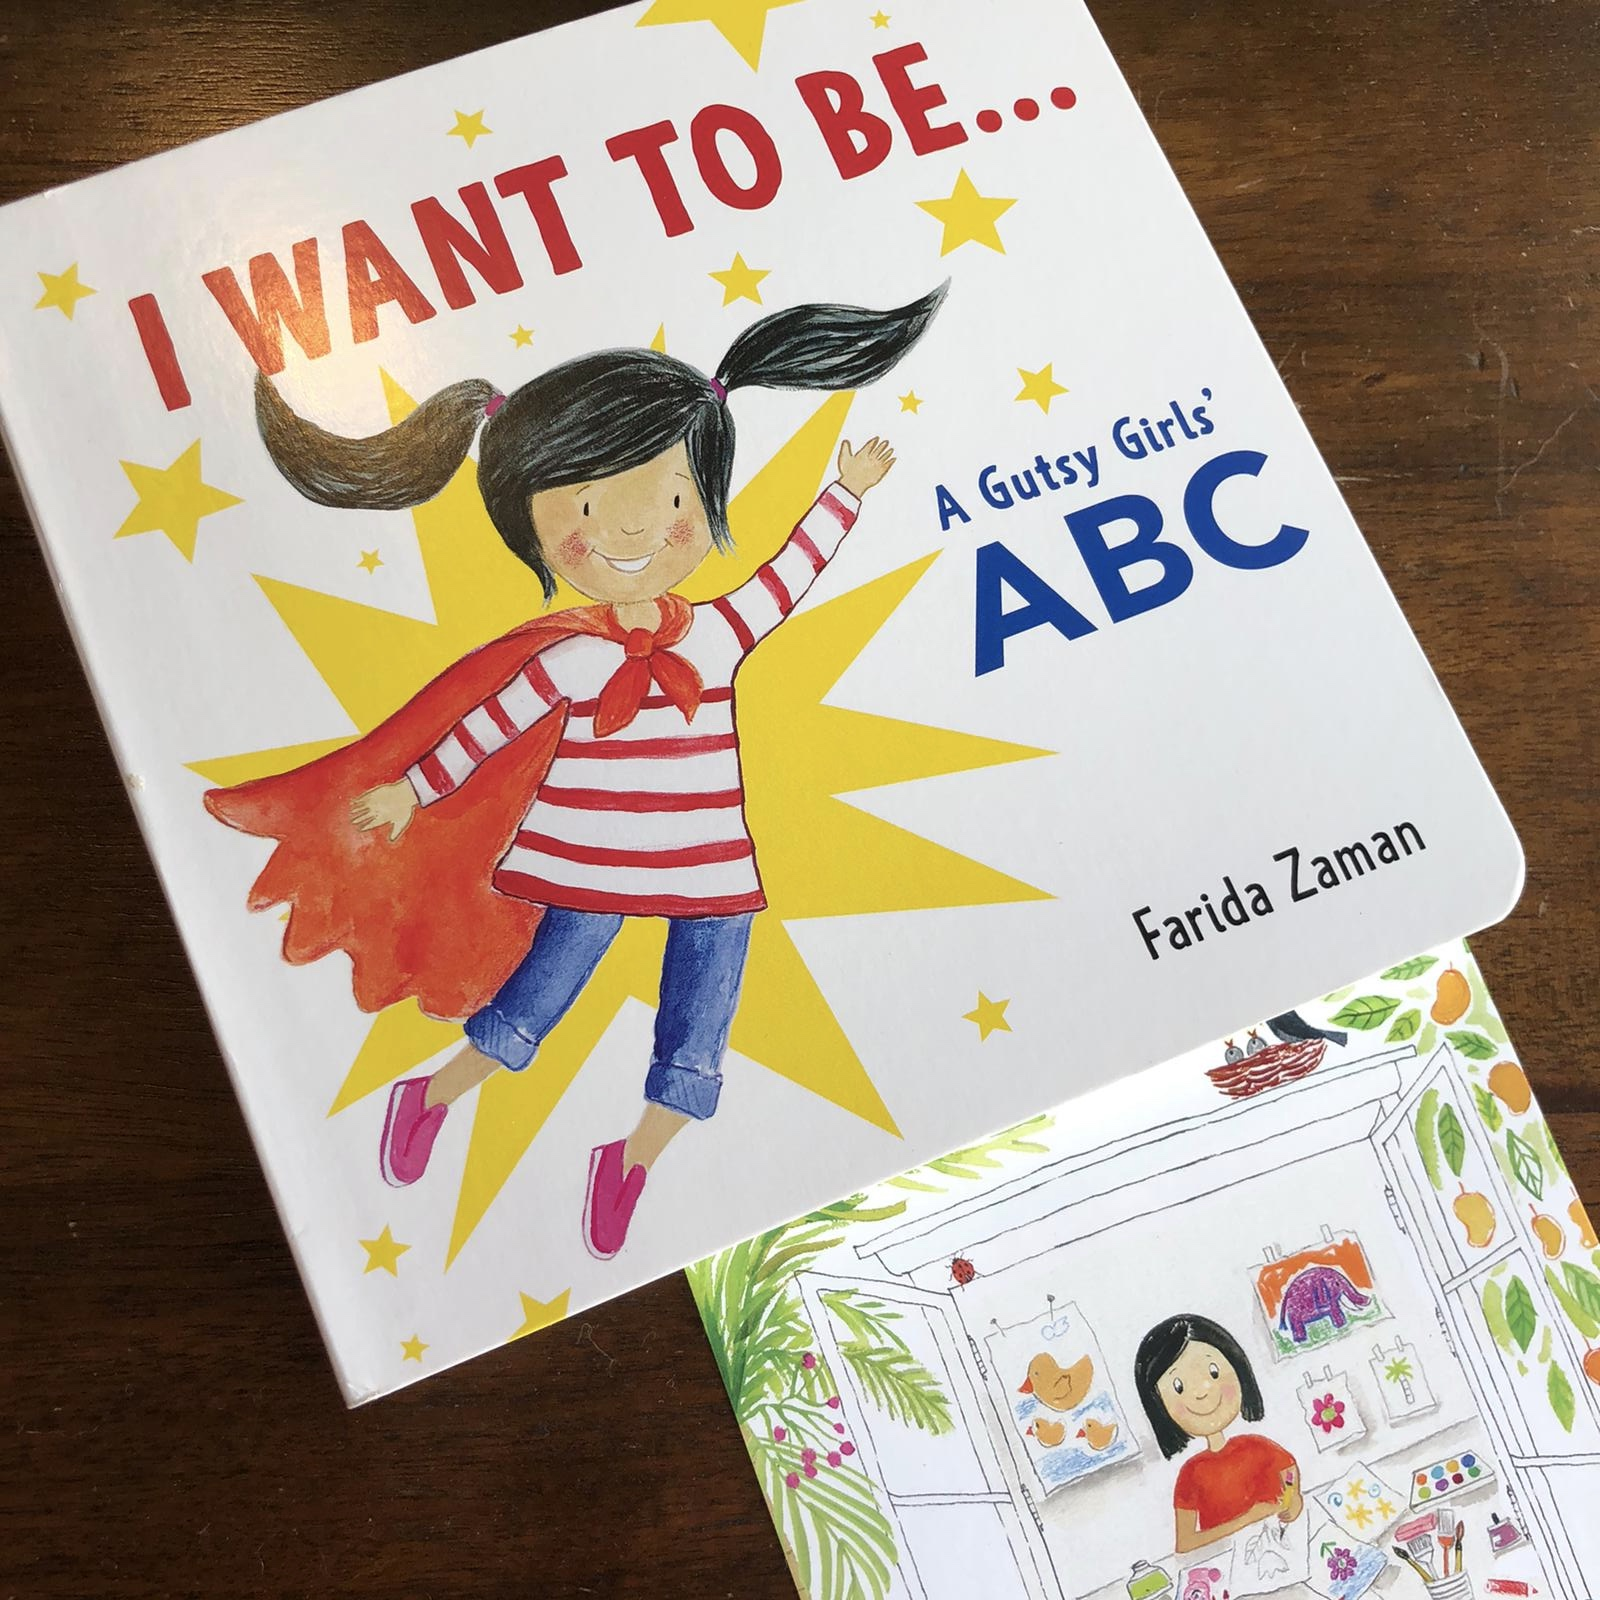 I WANT TO BE...: A GUTSY GIRLS' ABC